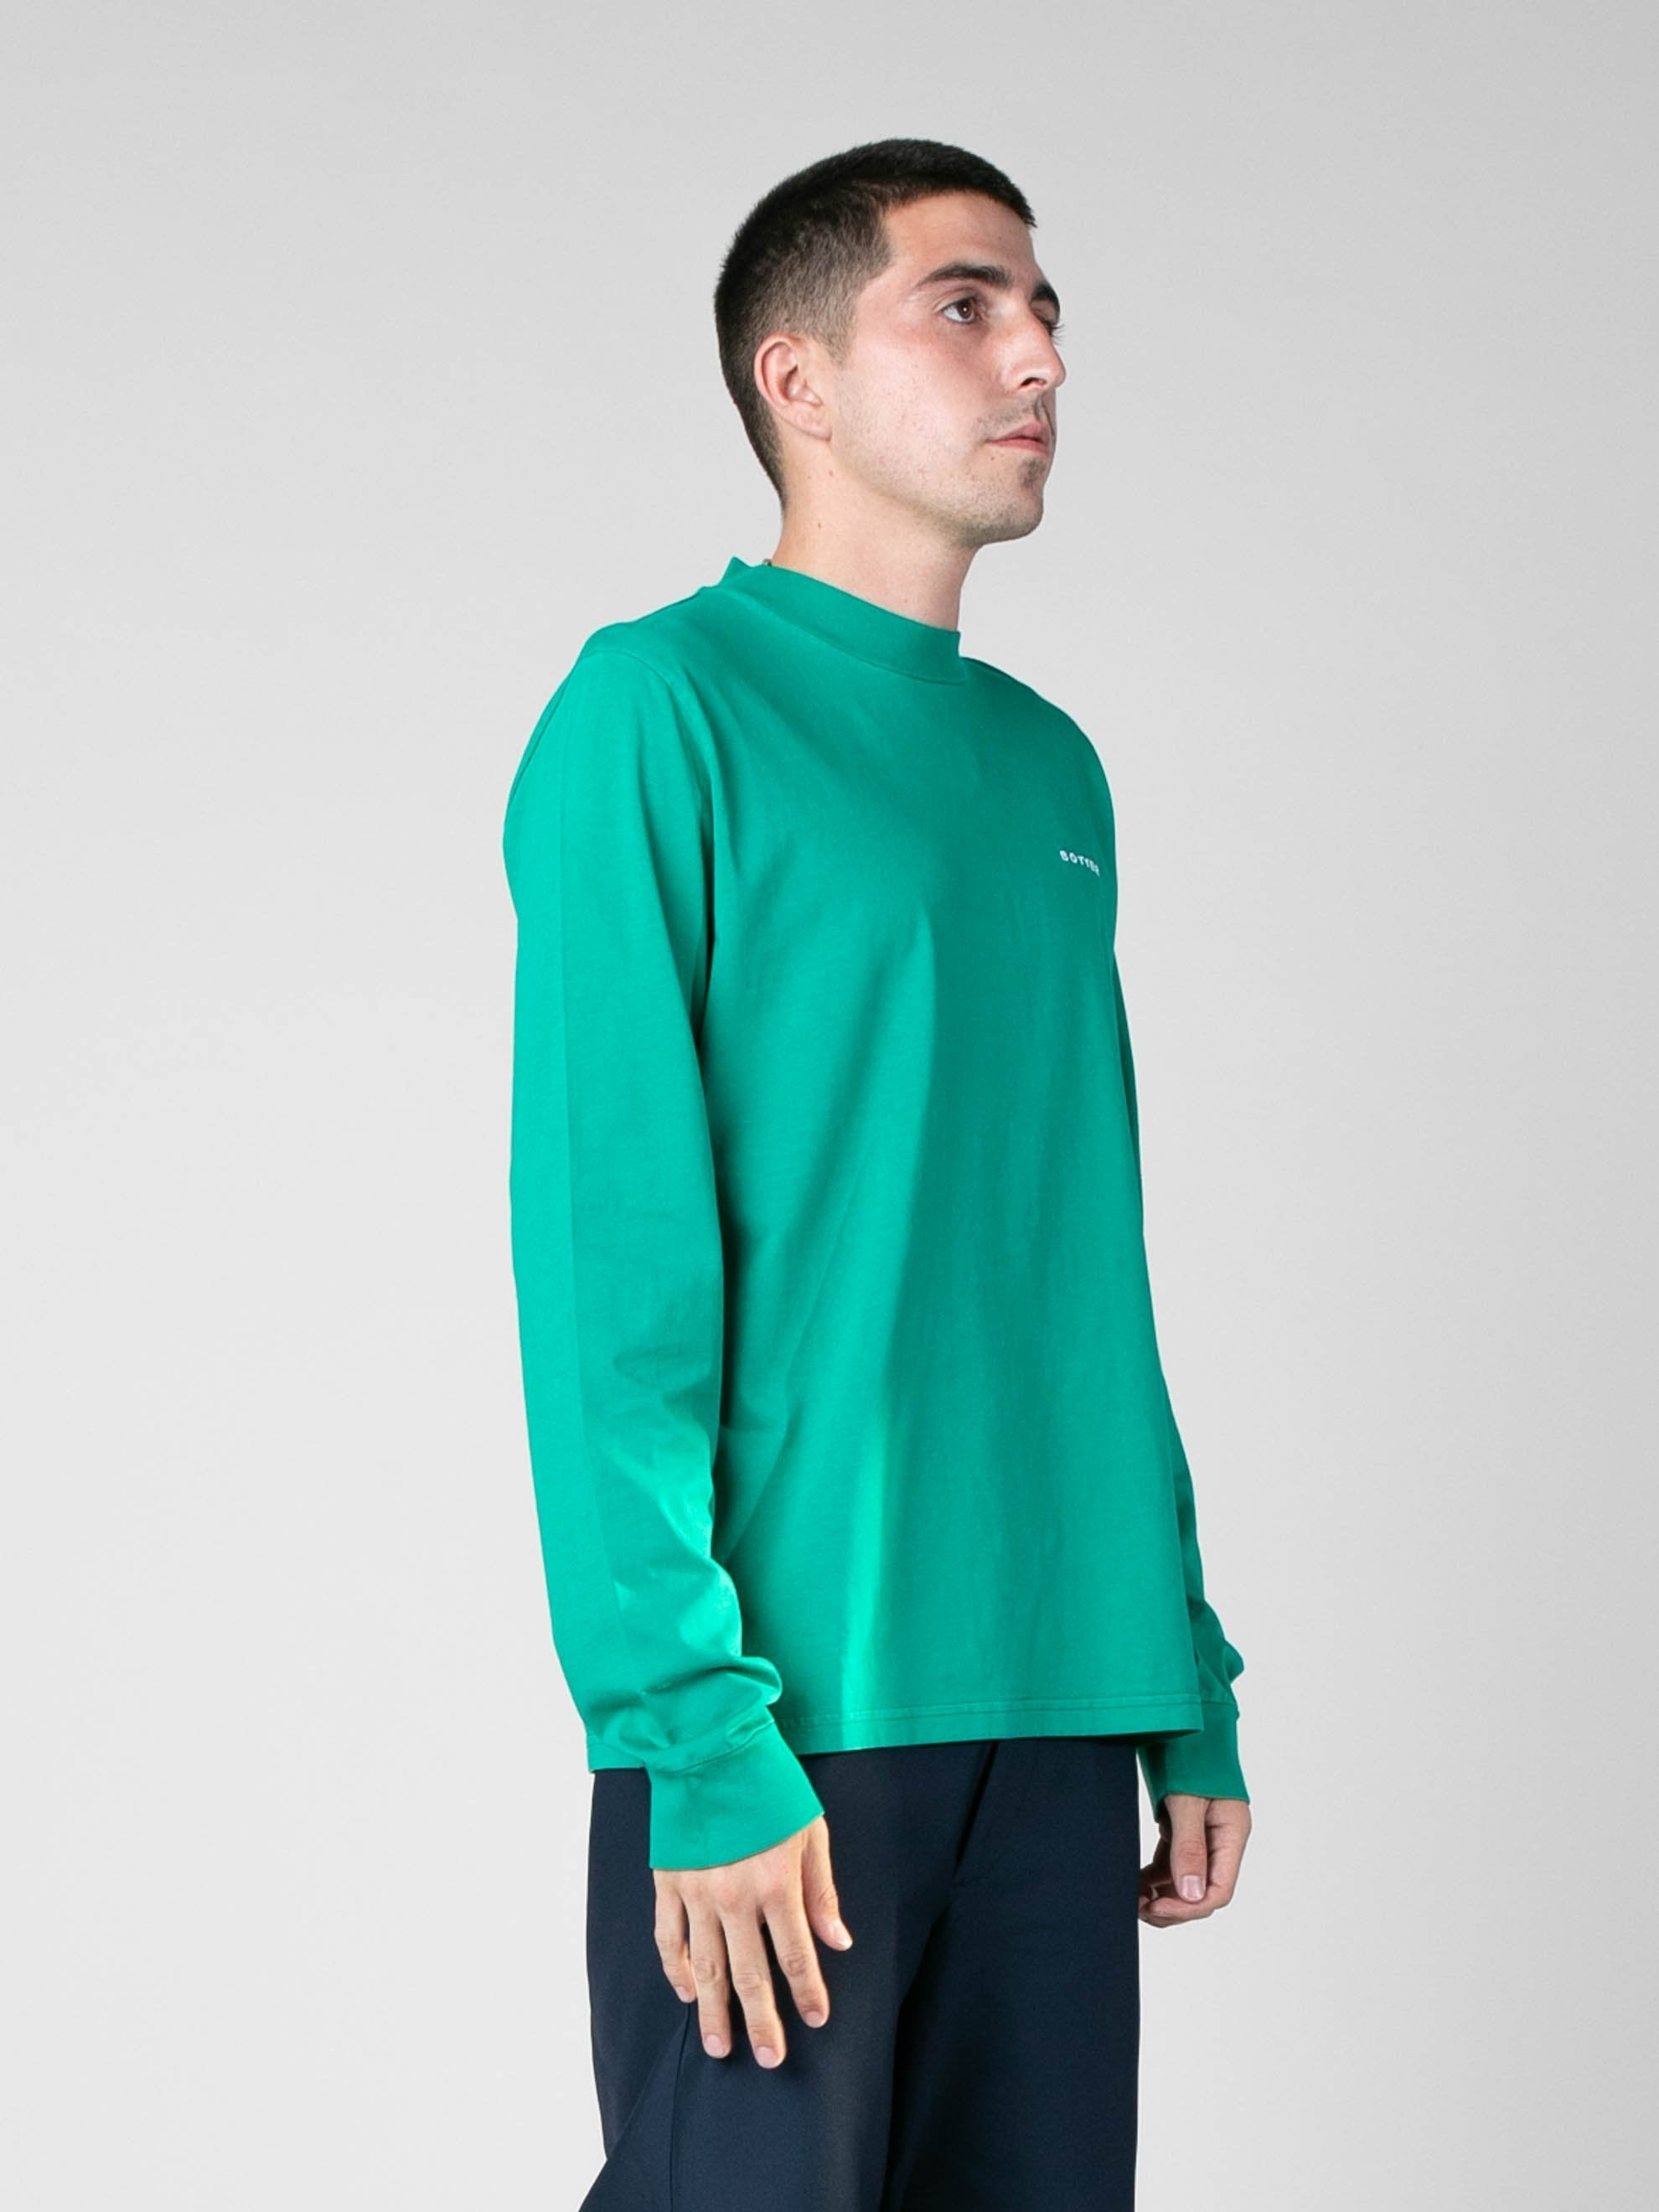 Grass Green Long Sleeve Embroidery Top 5